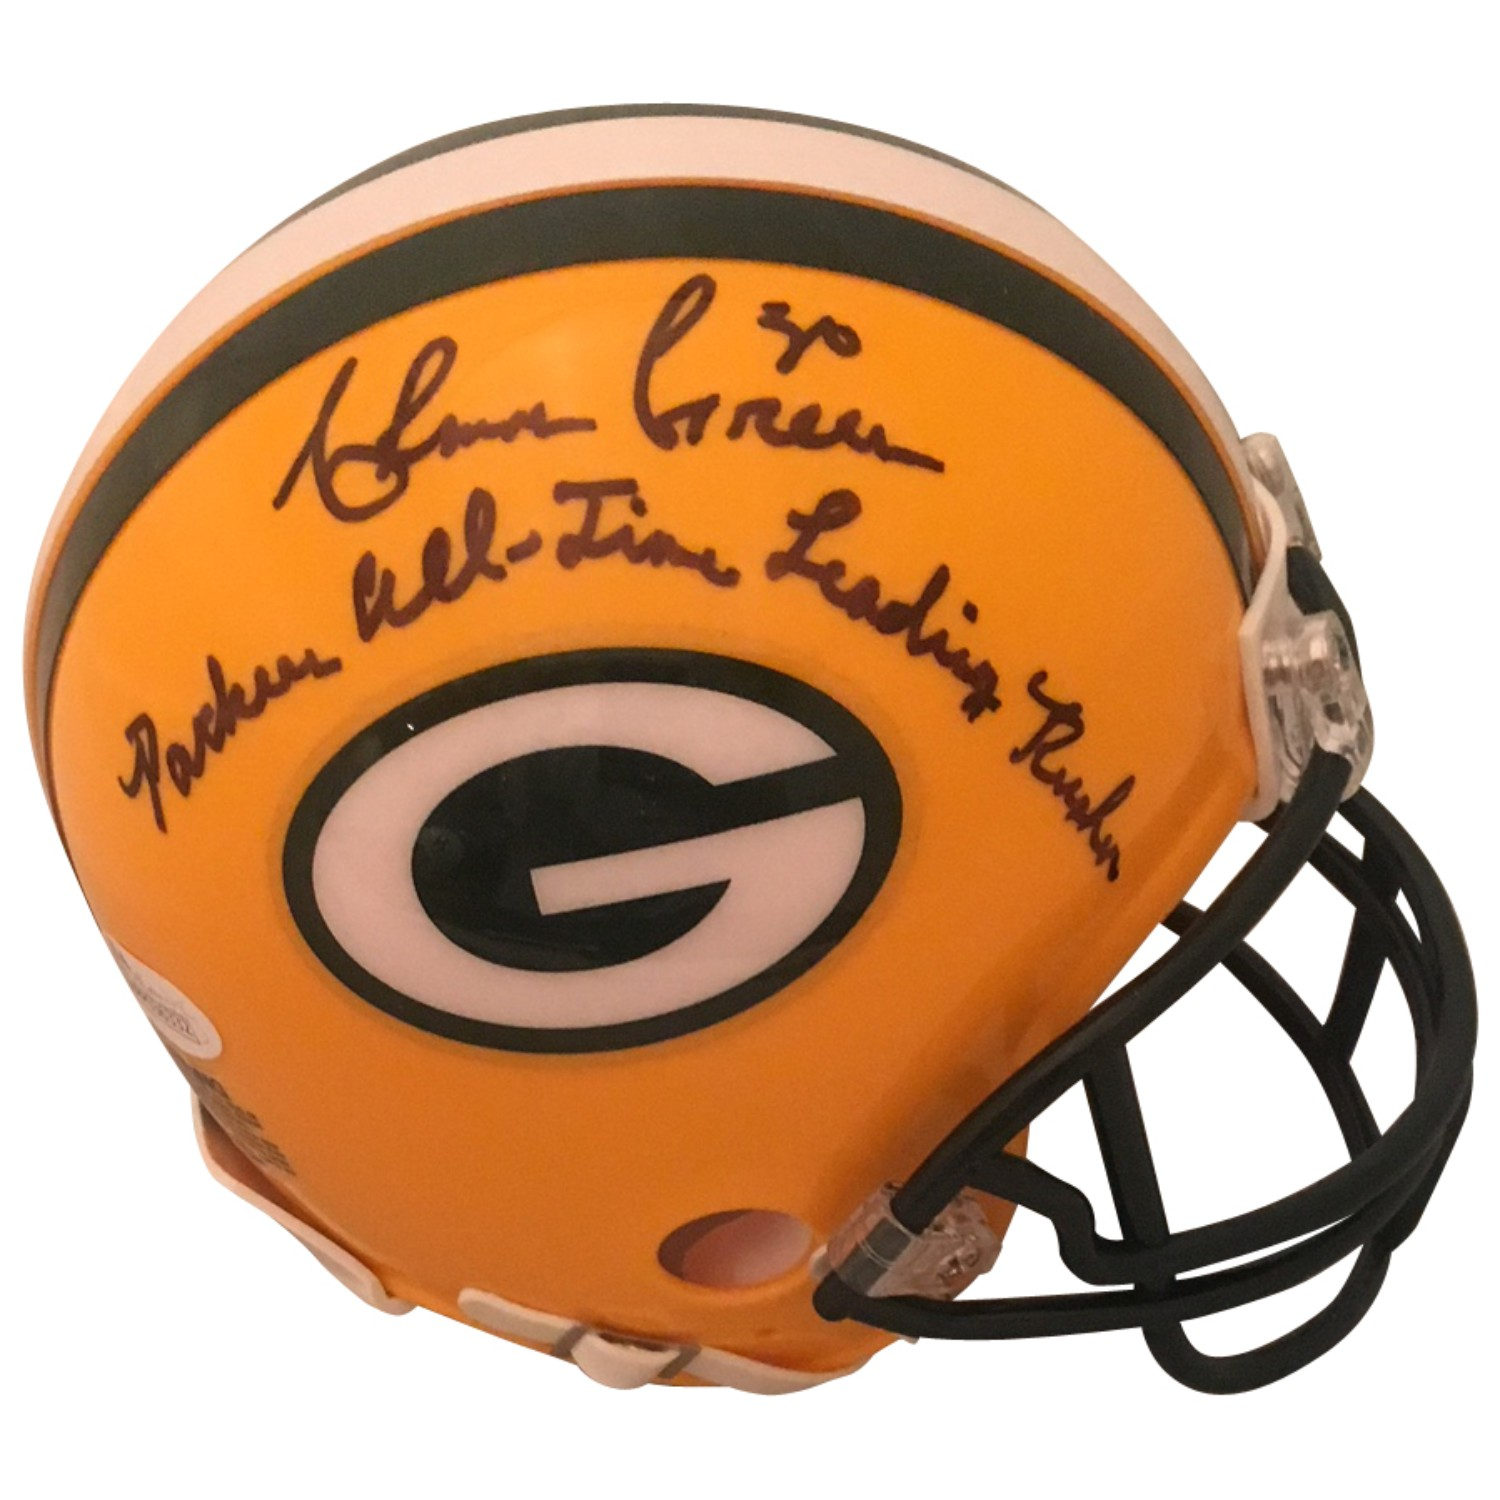 save off 8c5c6 1a5f1 Ahman Green Autographed Green Bay Packers Signed Football ...